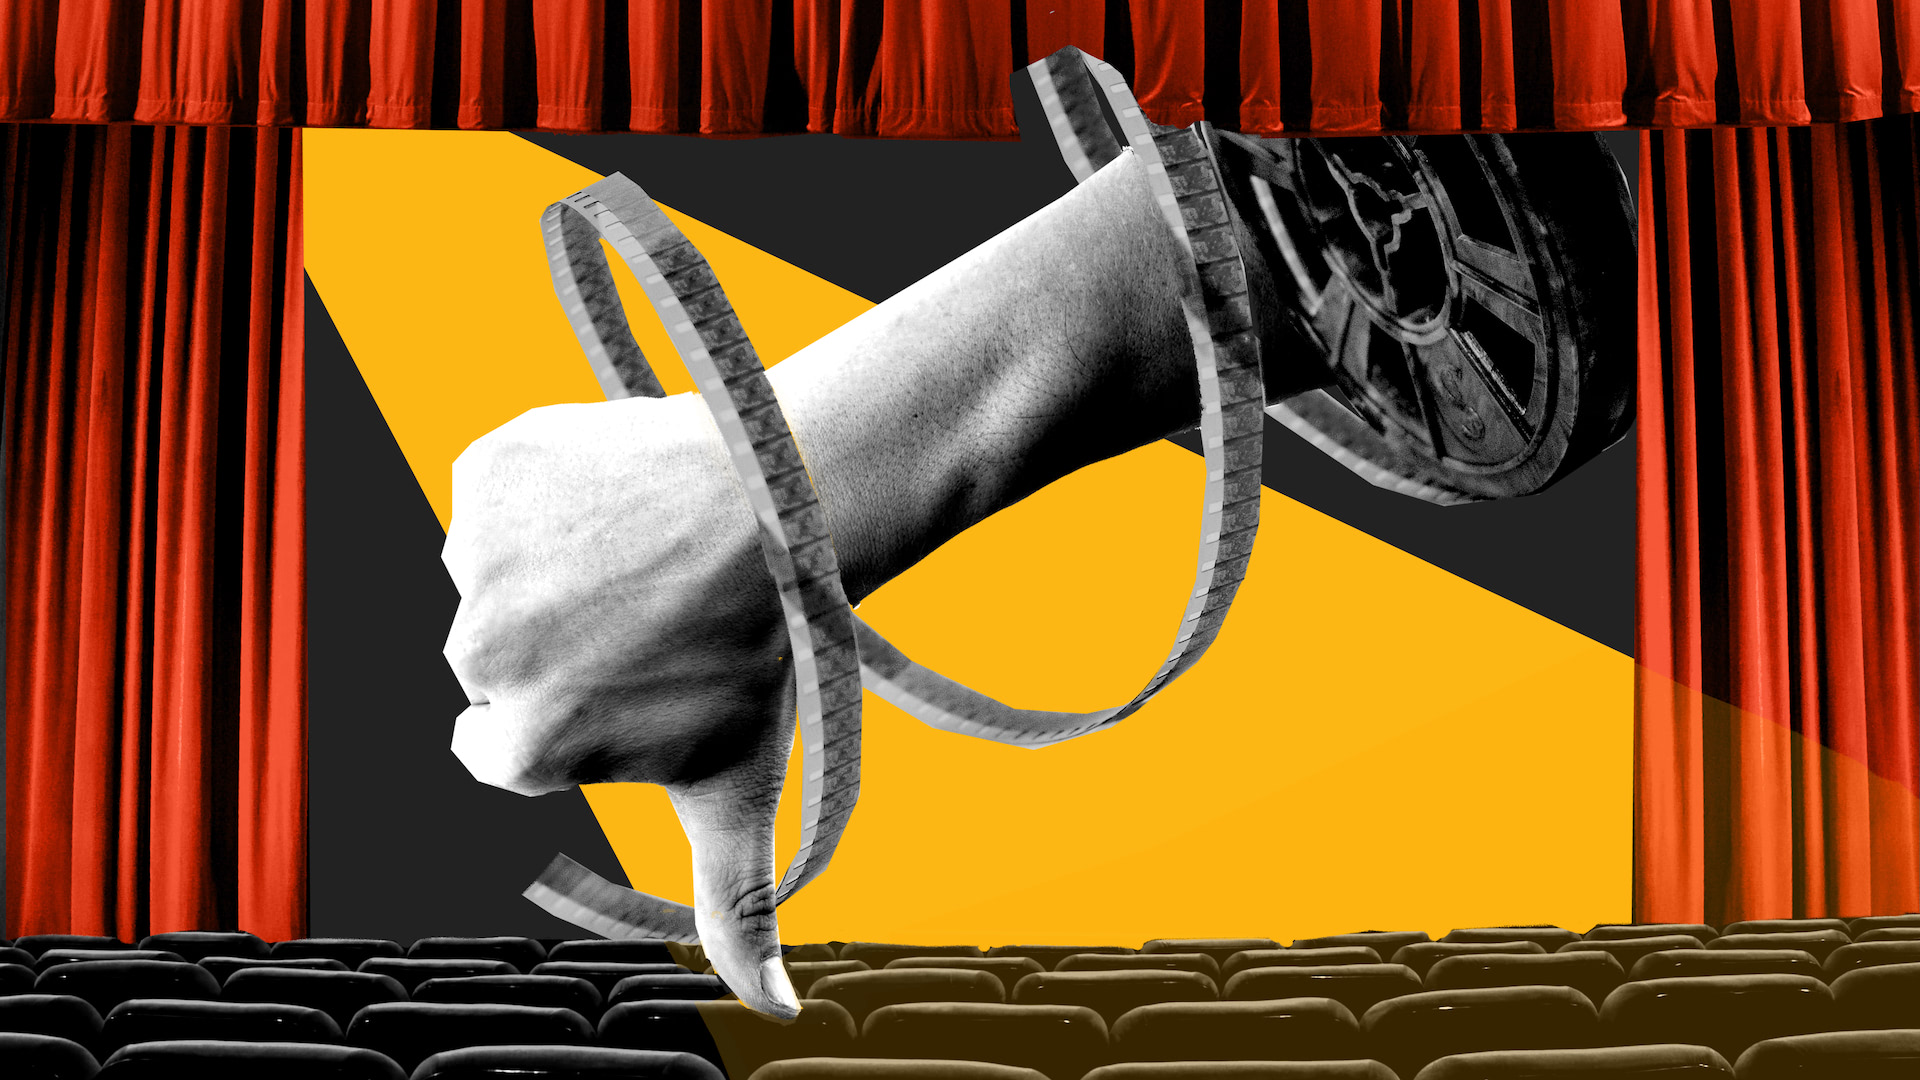 """Empty theatre with an illustrated """"thumbs down"""" hand with a cinema reel"""